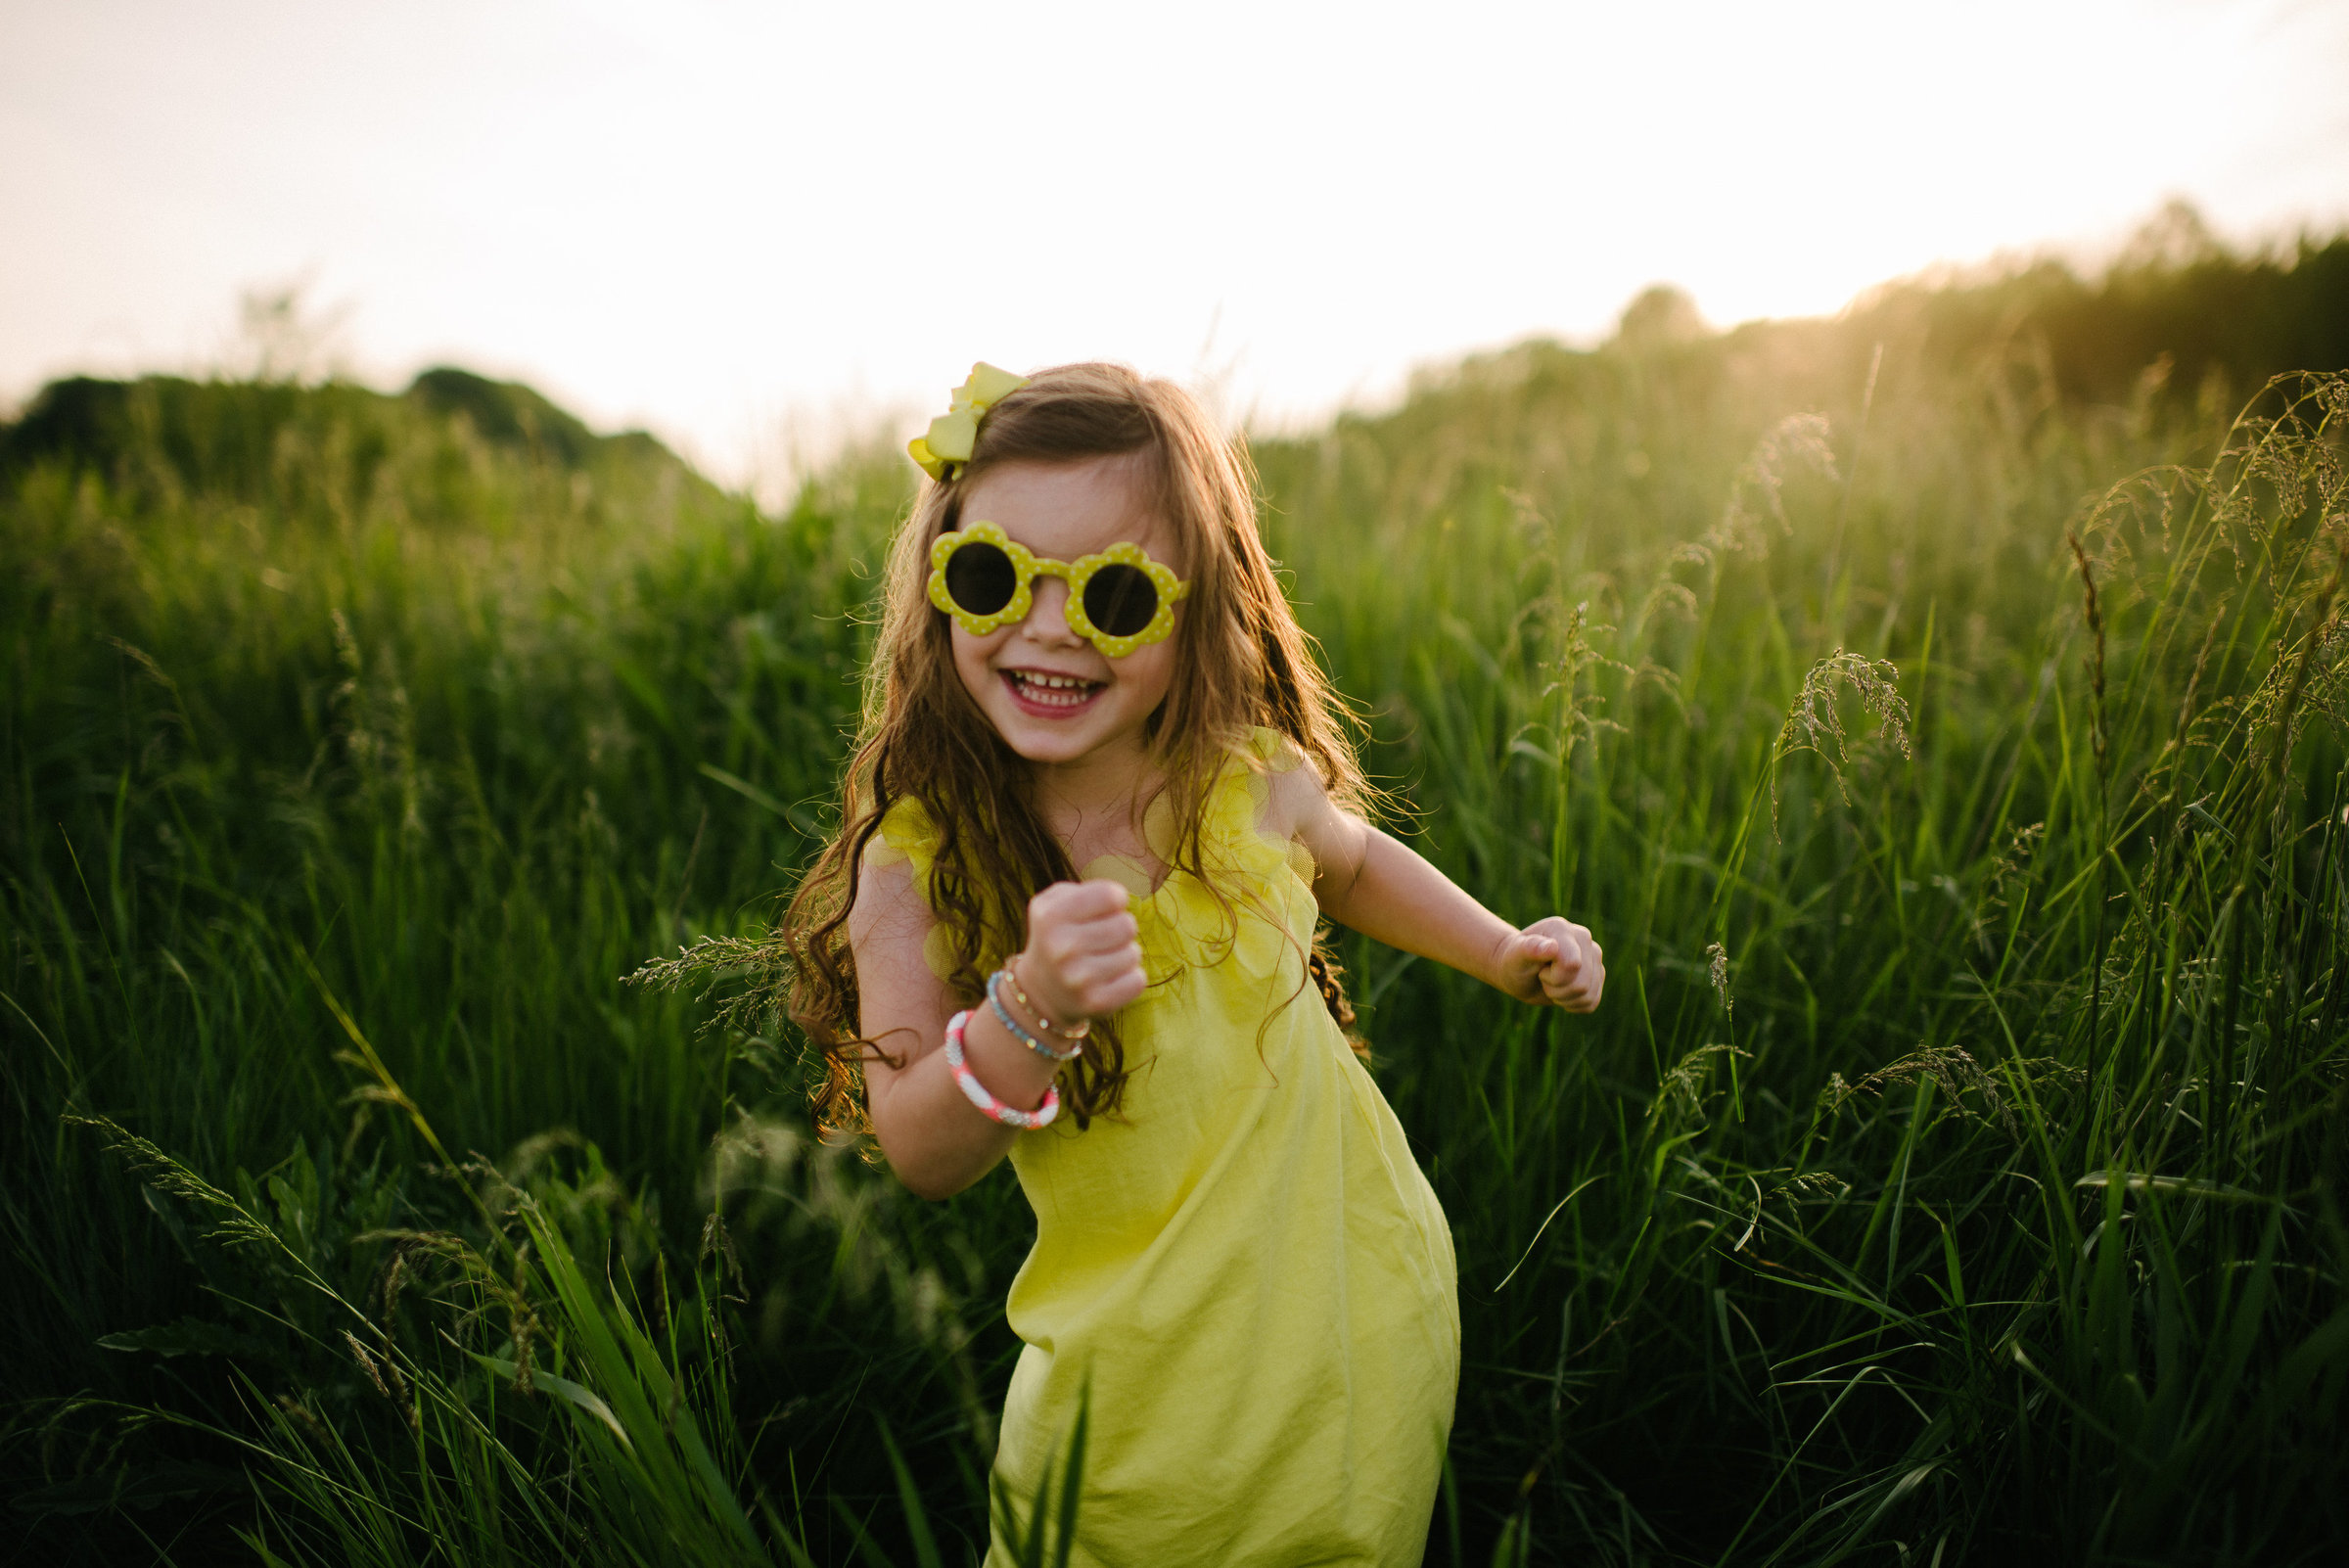 little girl wearing yellow sundress and sunglasses dancing in field